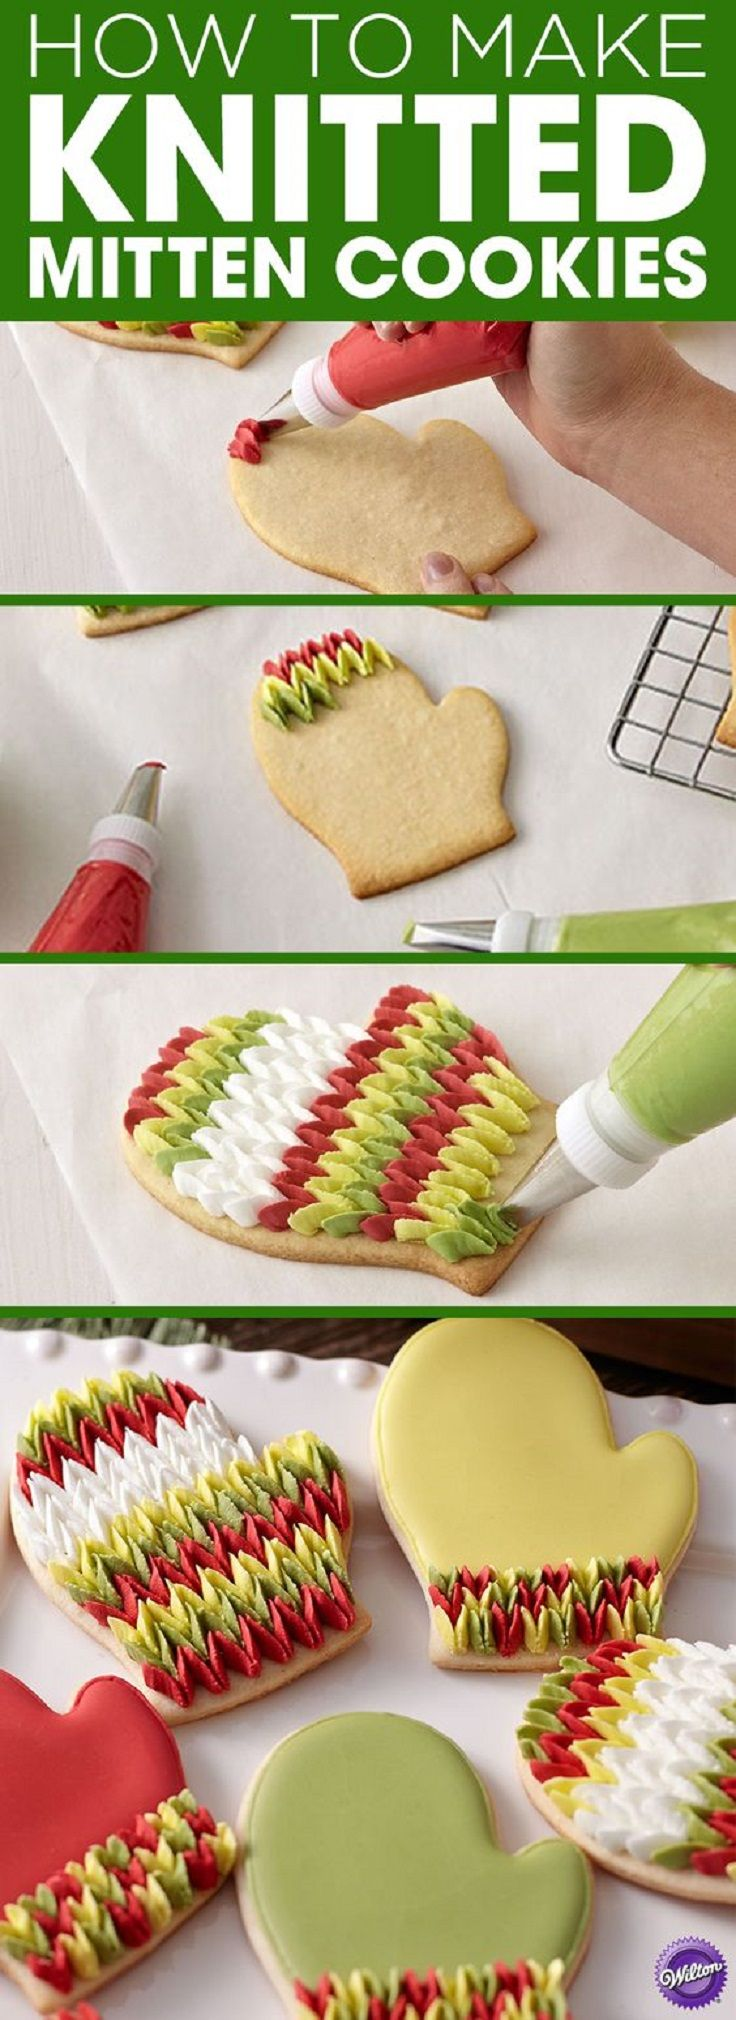 How to Make Knitted Mitten Cookies - 17 Skillfully Decorated Christmas Cookies Which Will Spread Cheer Among Your Family